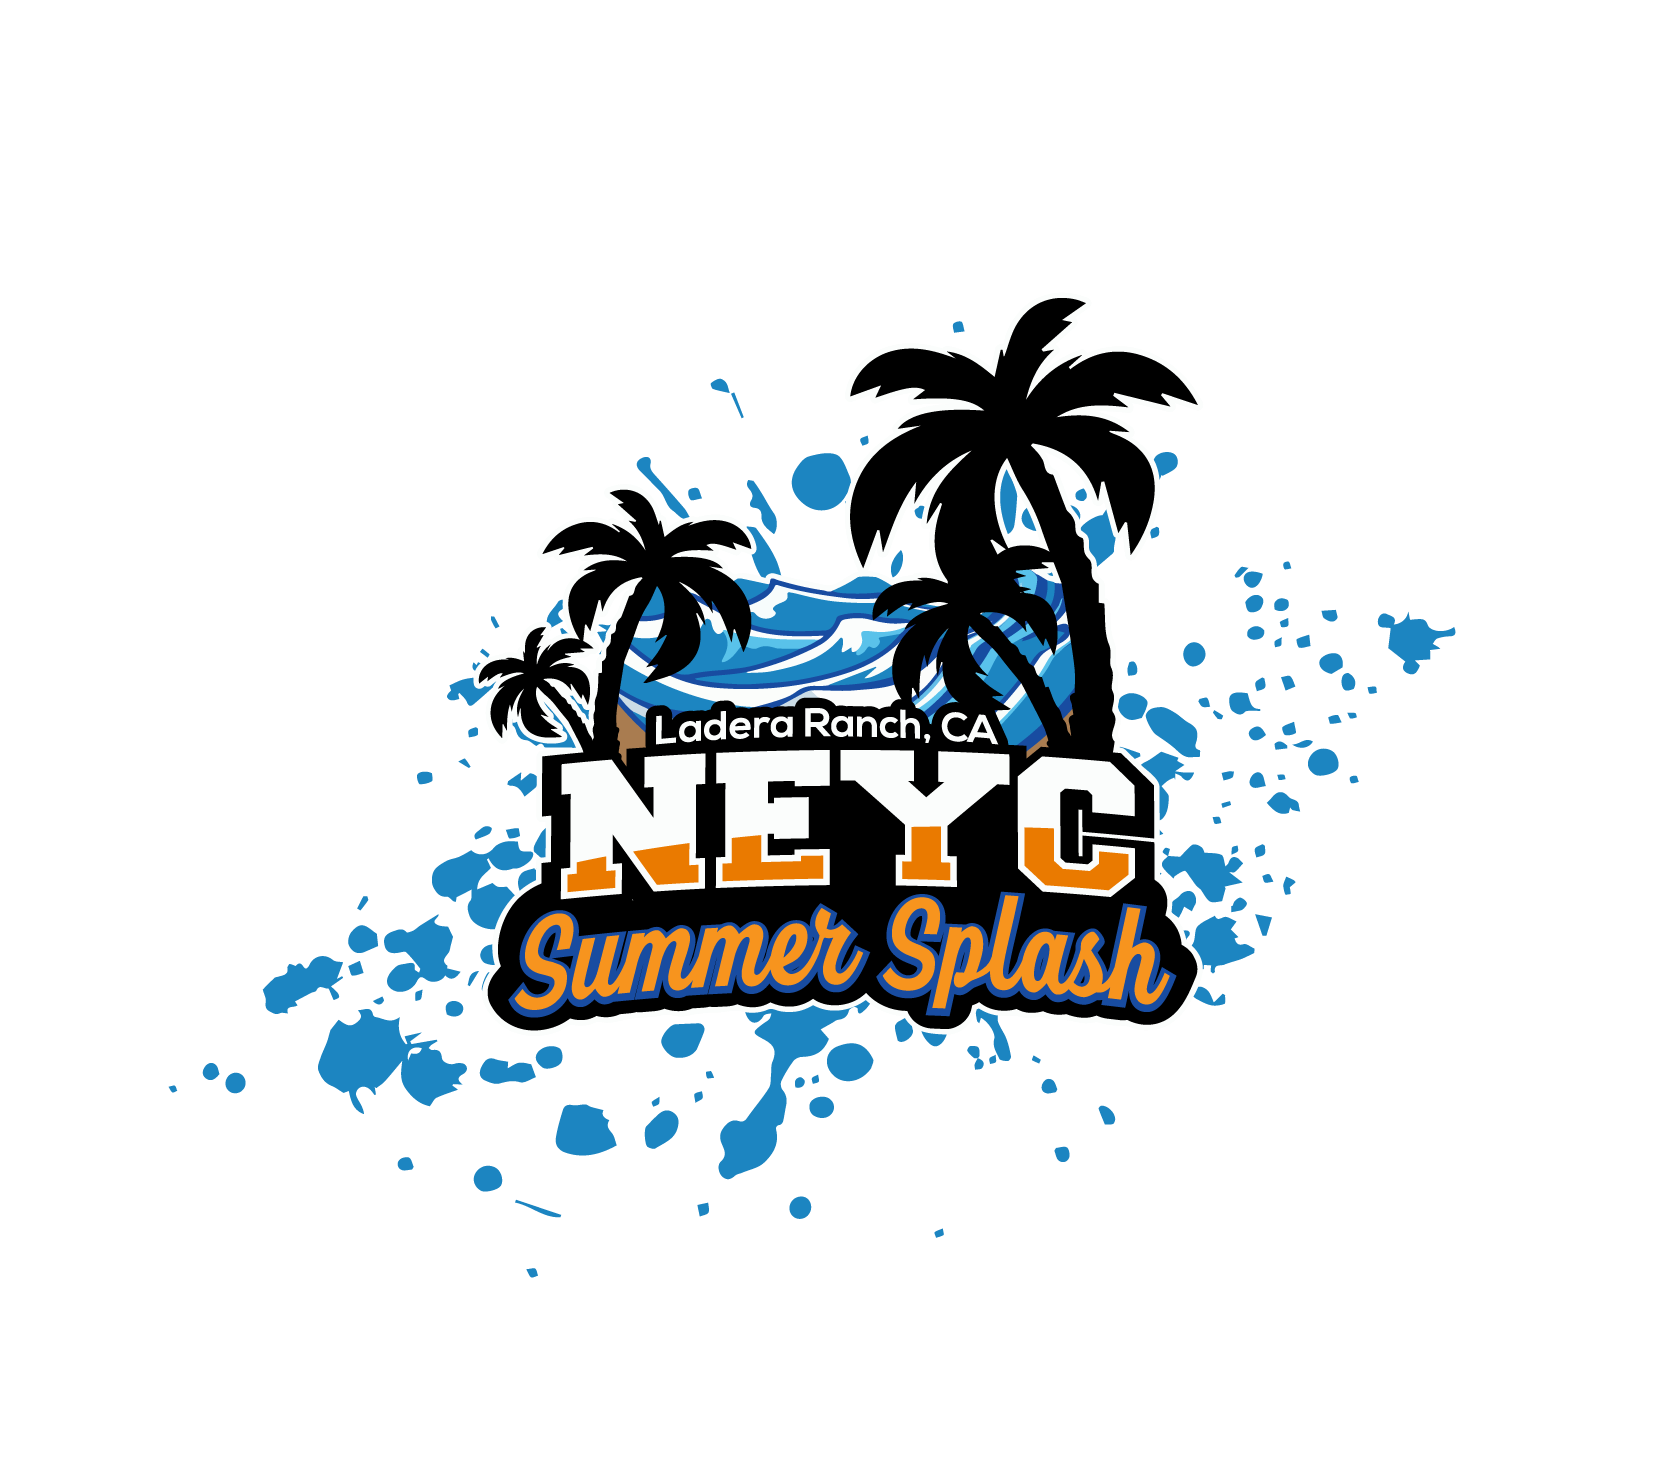 NEYC SUMMER SPLASH